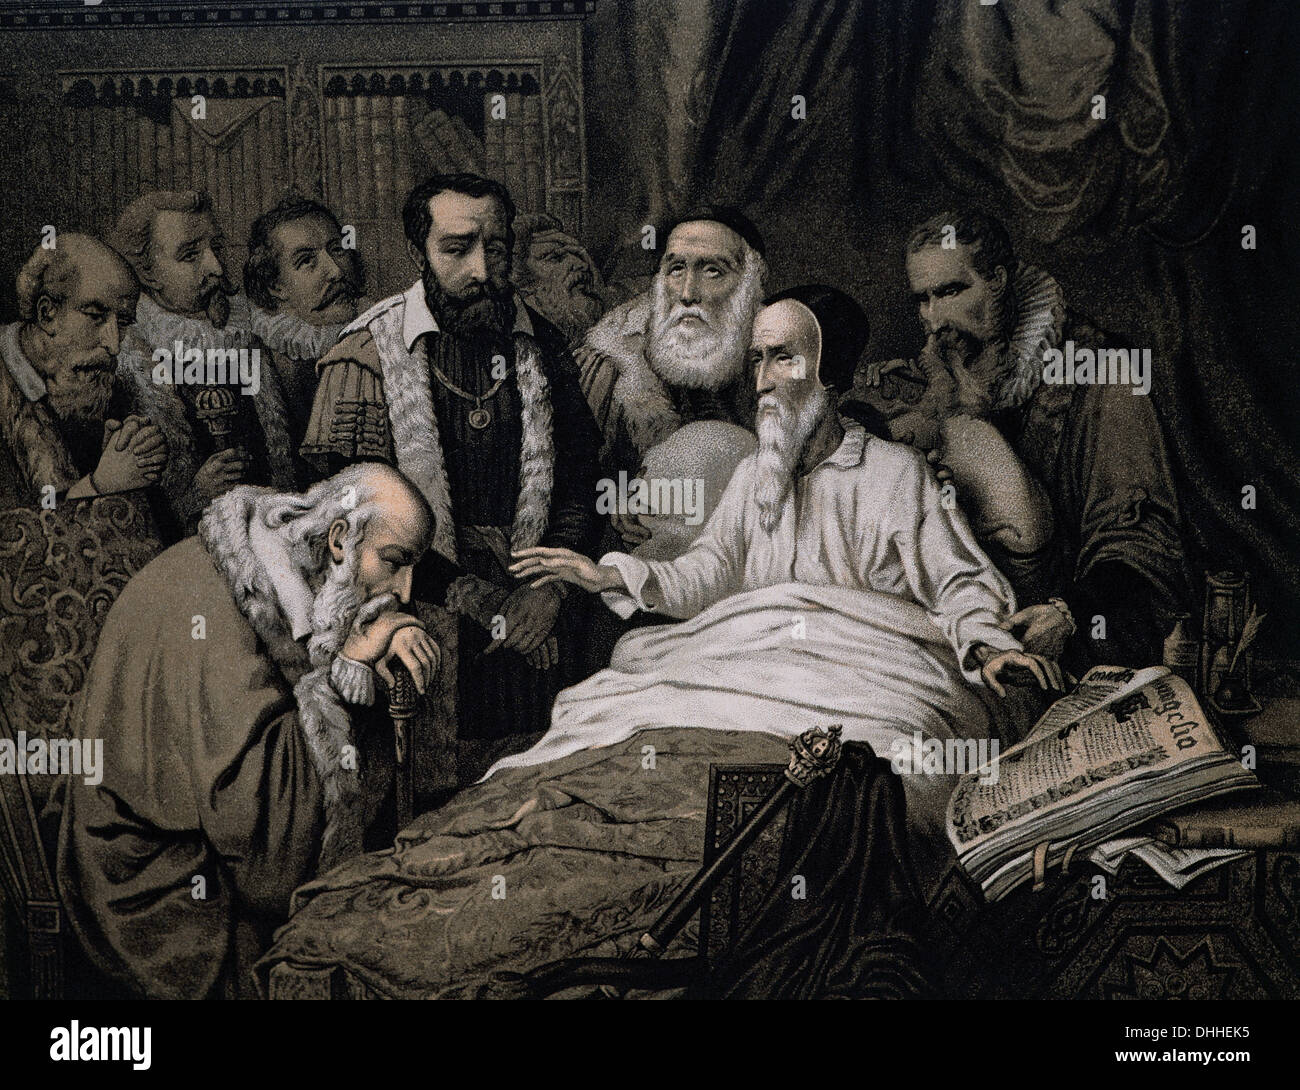 John Calvin (1509-1564). French theologian and reformer. Last moments of Calvin. Engraving, 1882. - Stock Image